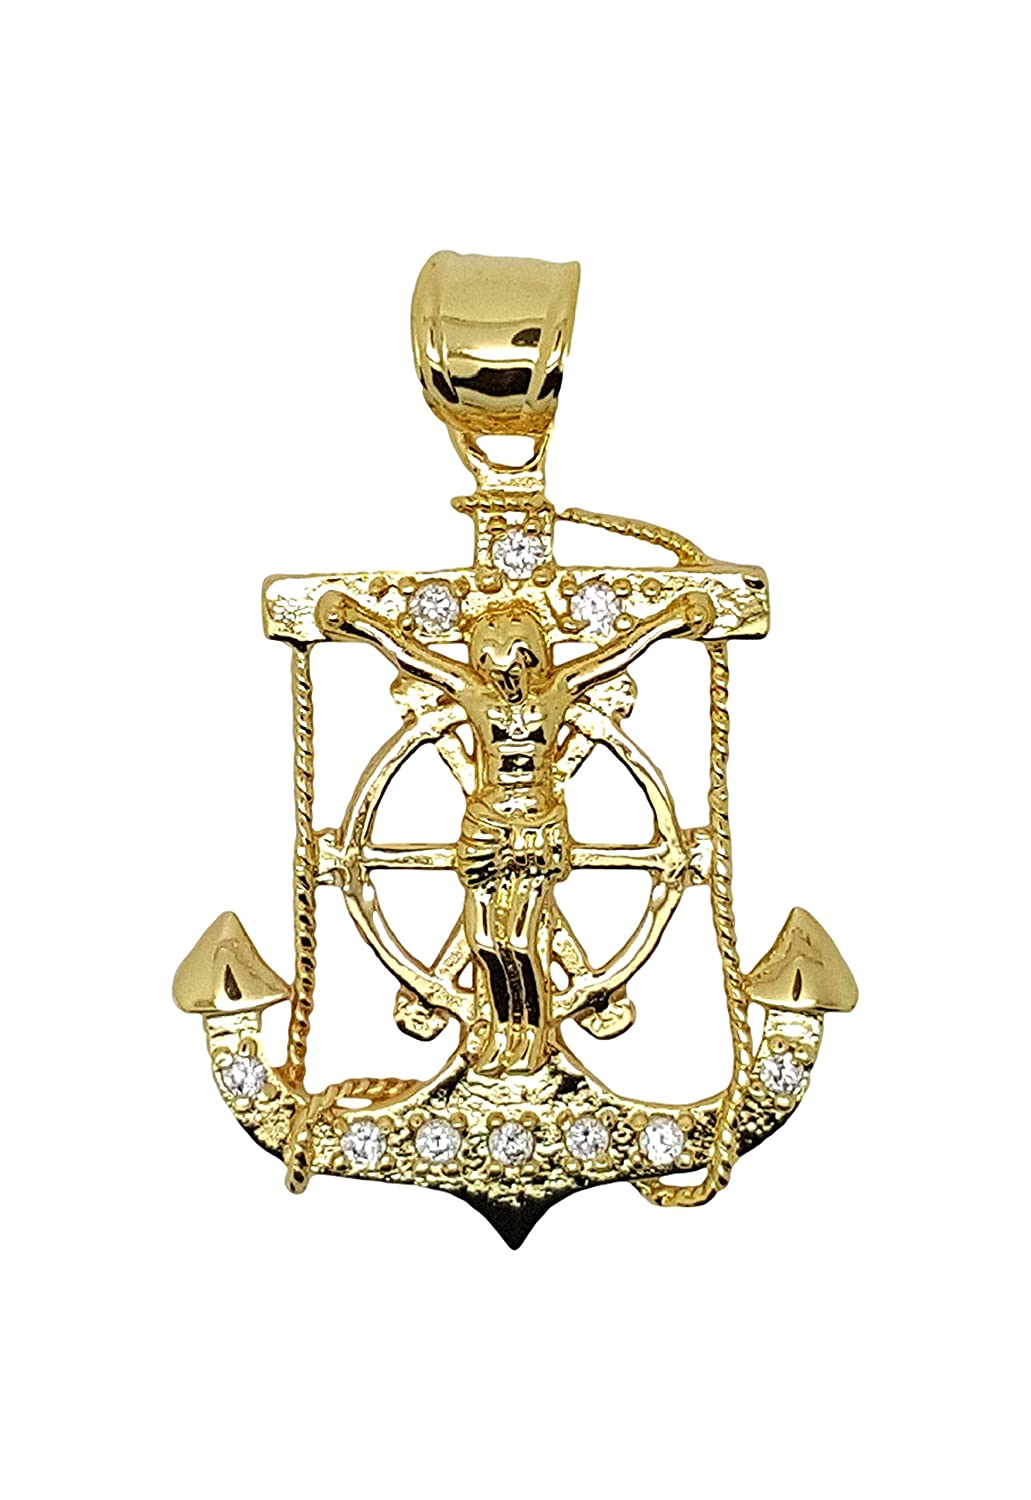 14kt Gold Filled Anchor Cross Pendant Dije De Ancla Con Cruz Oro